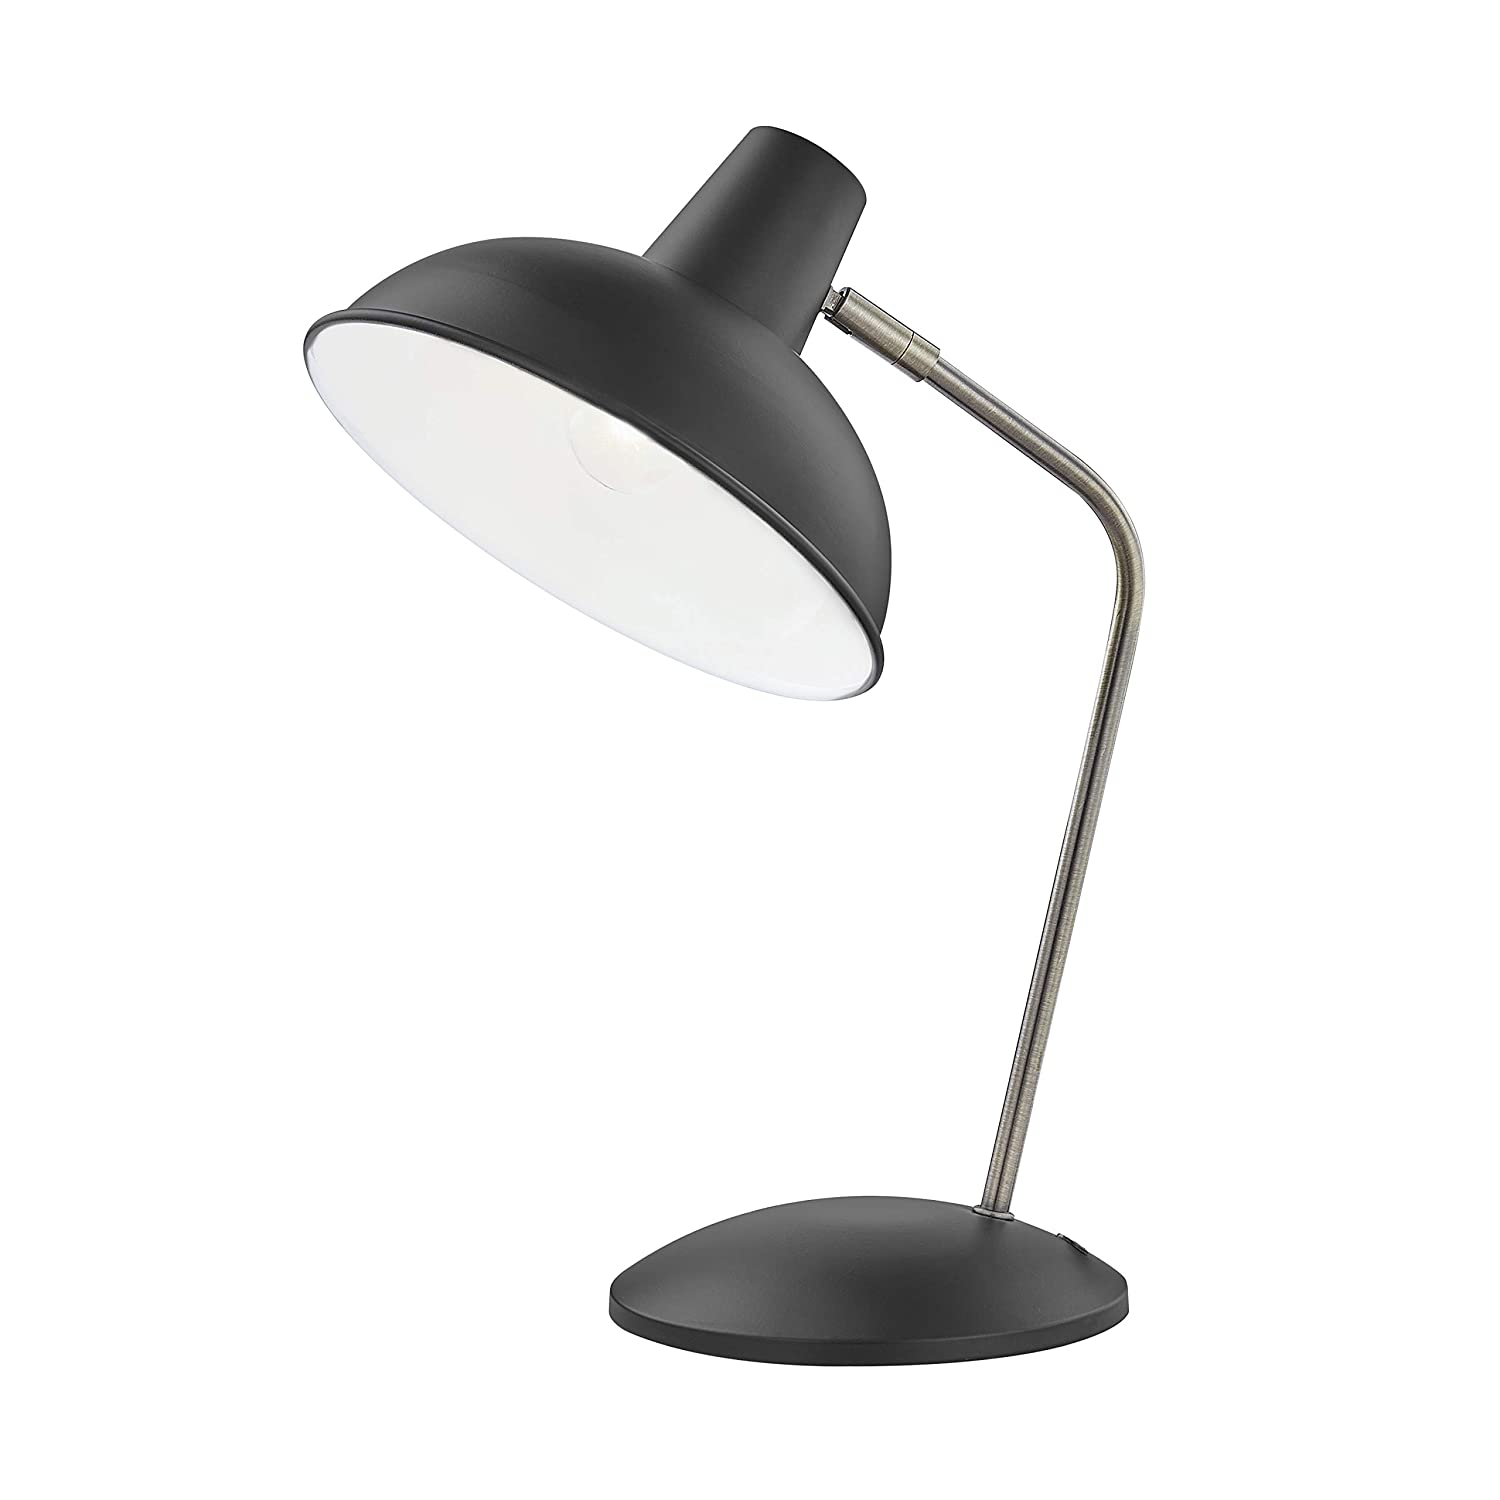 Light Society LS-T261-BK Hylight Black Retro Desk Lamp with Antique Brass Details, Mid Century Modern Vintage Style